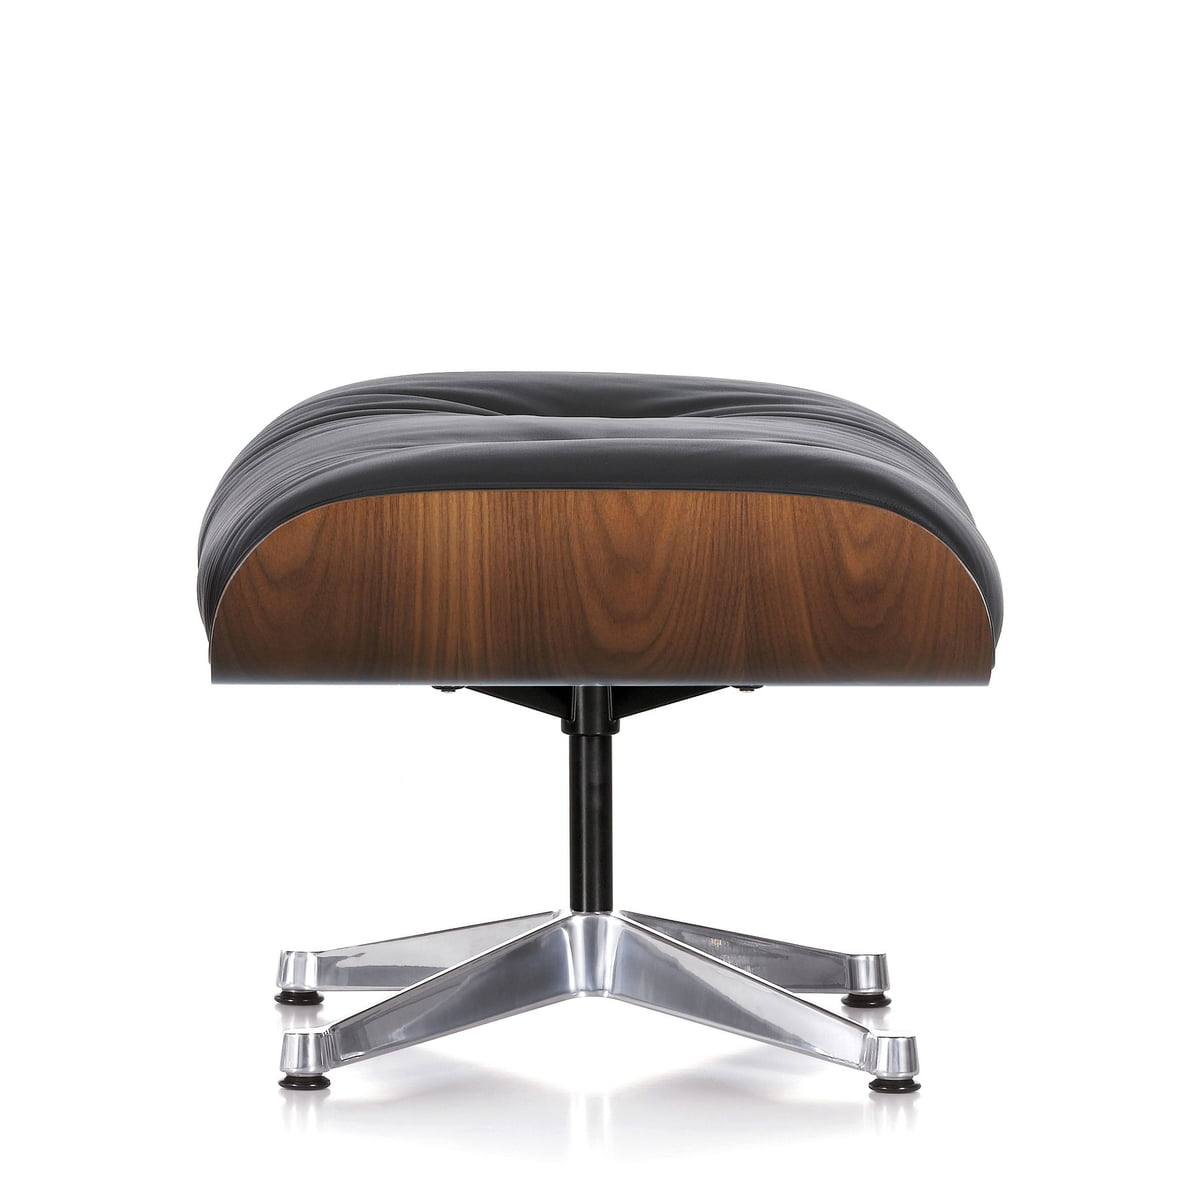 Ottoman black to the vitra lounge chair for Vitra lounge chair nachbau